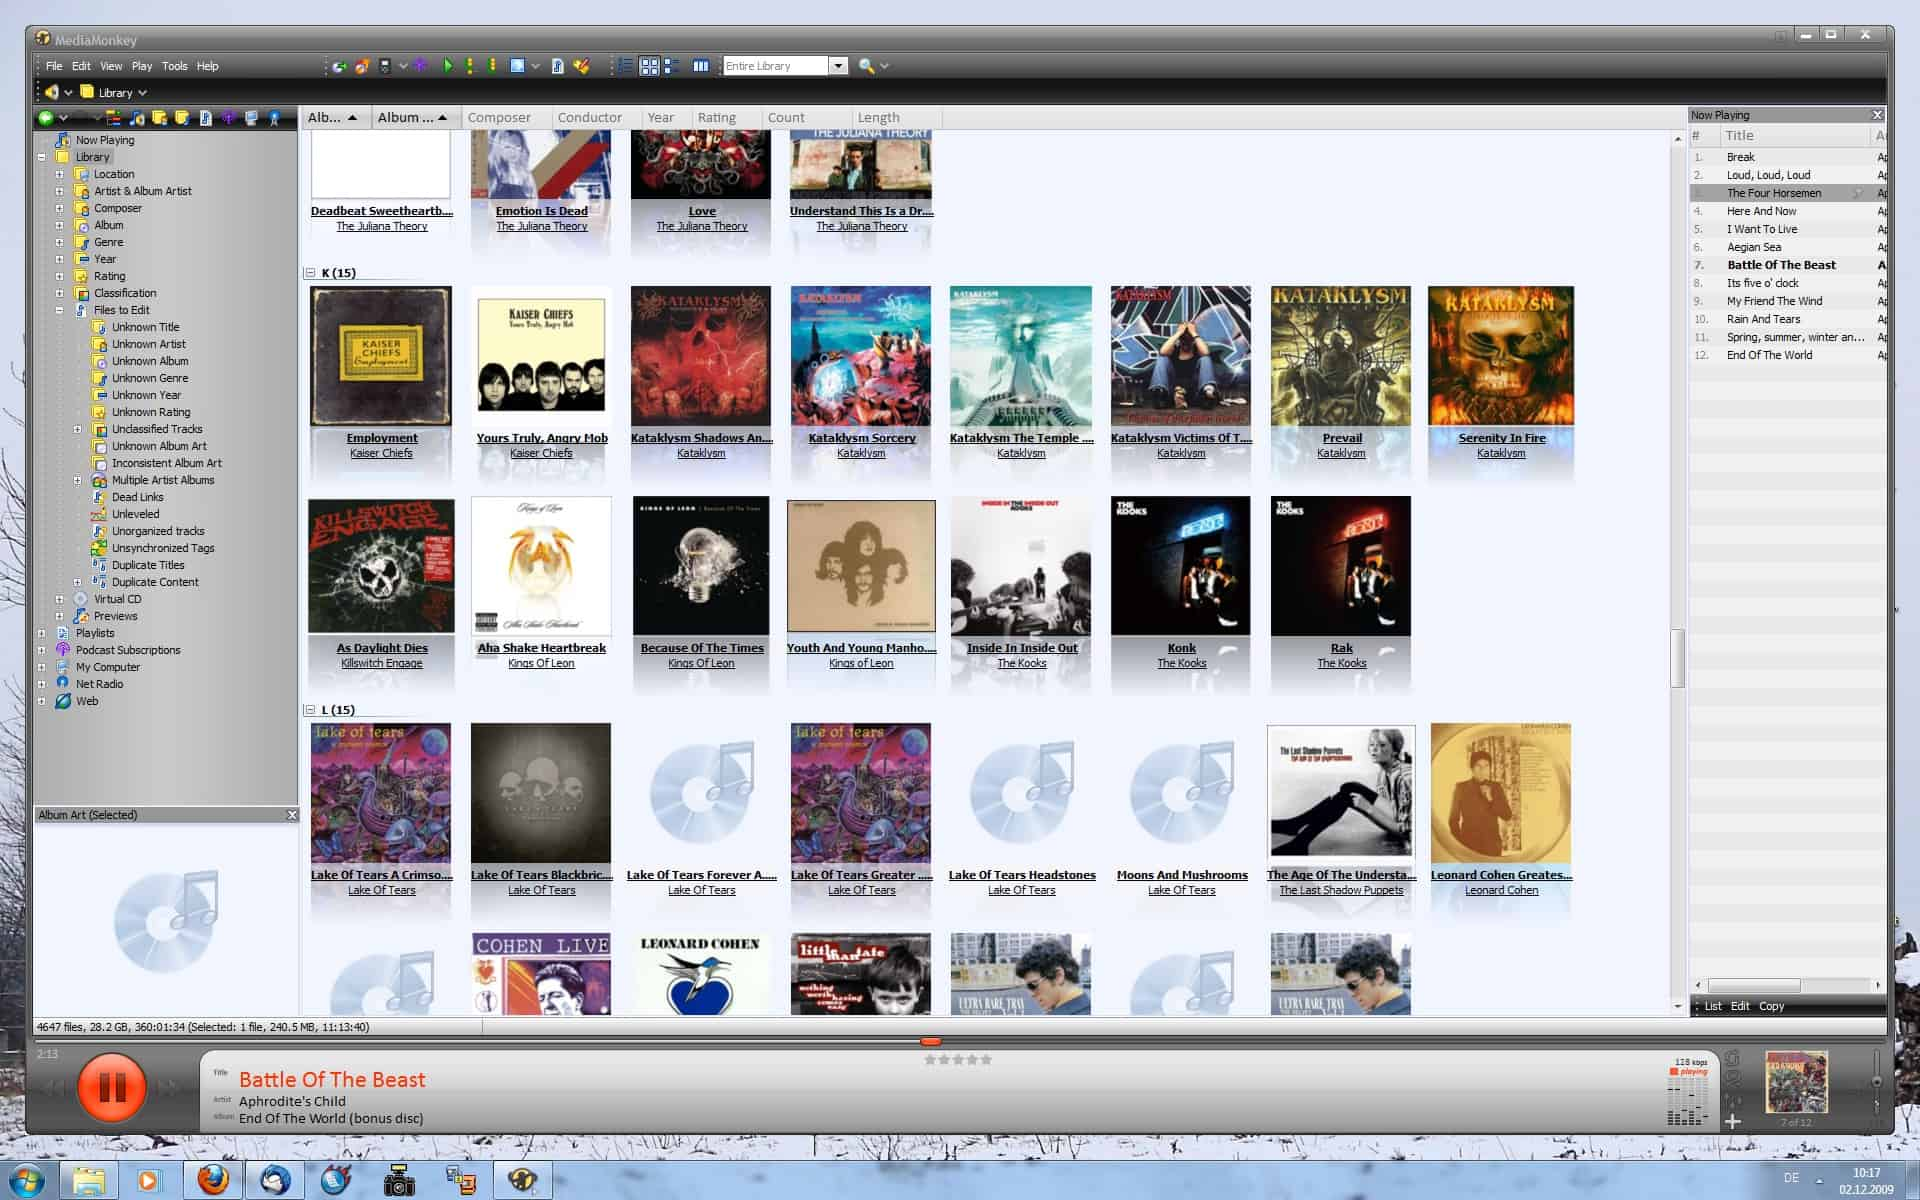 What's the best Winamp alternative now that it is shutting